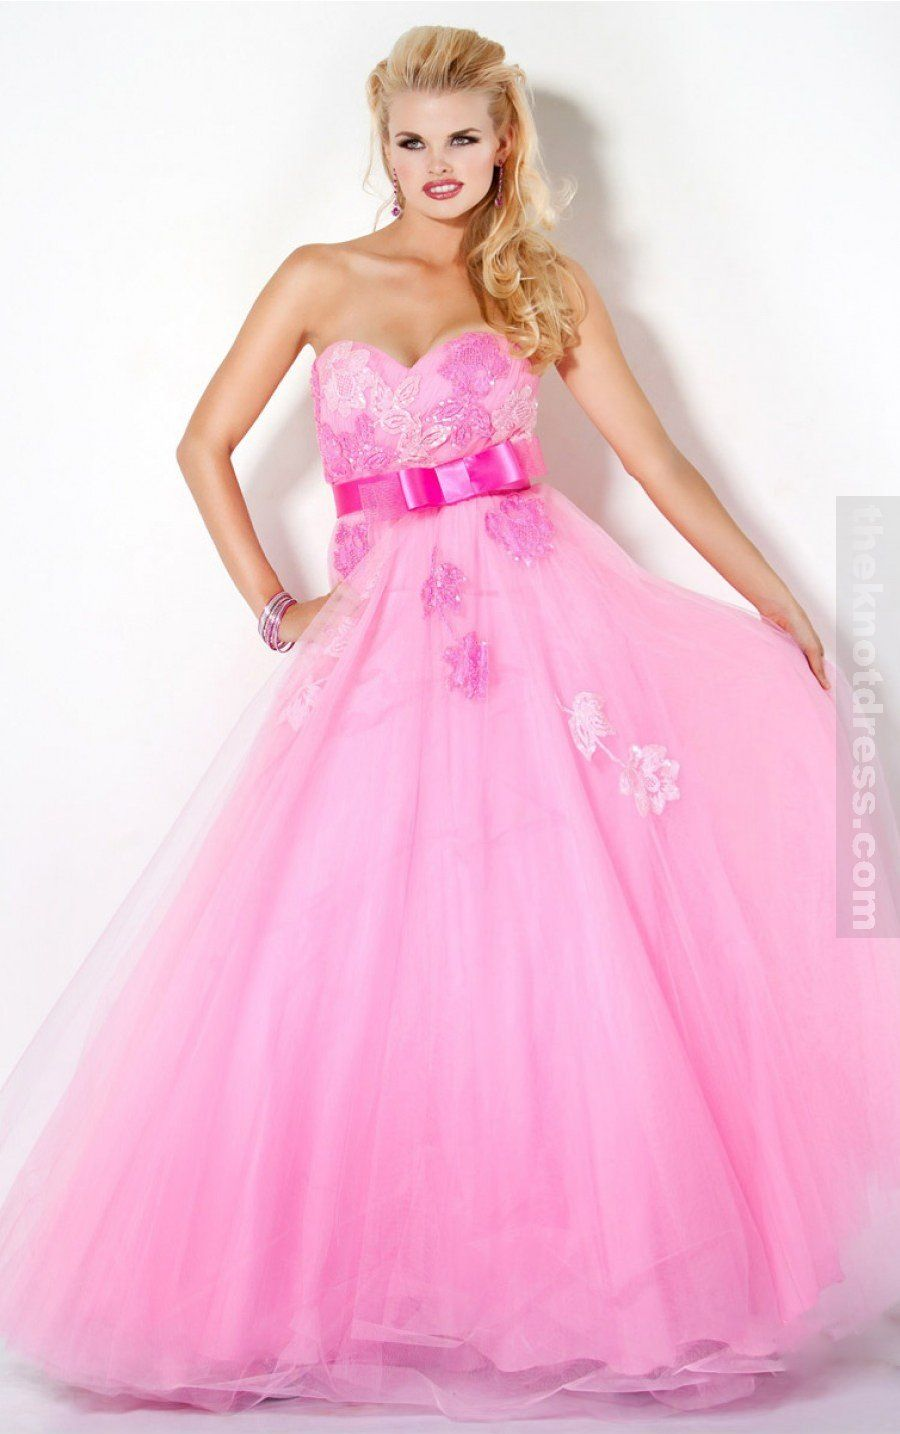 Pink Princess Dresses - RP Dress